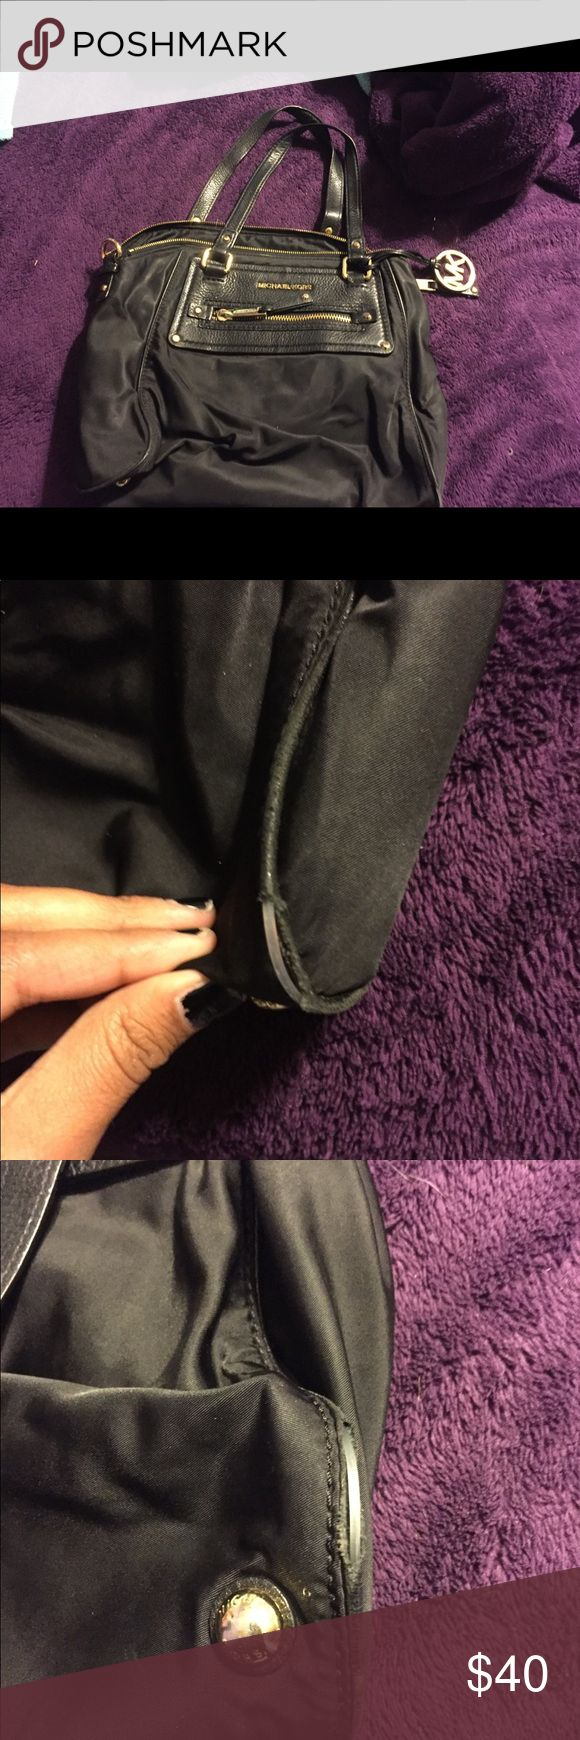 Black MK Purse Preloved Black MK Purse. Excellent condition. Flaws are showed in pictures. Besides that nothing else wrong with the purse. Feel free to ask any questions :) reasonable offers are welcomed Michael Kors Bags